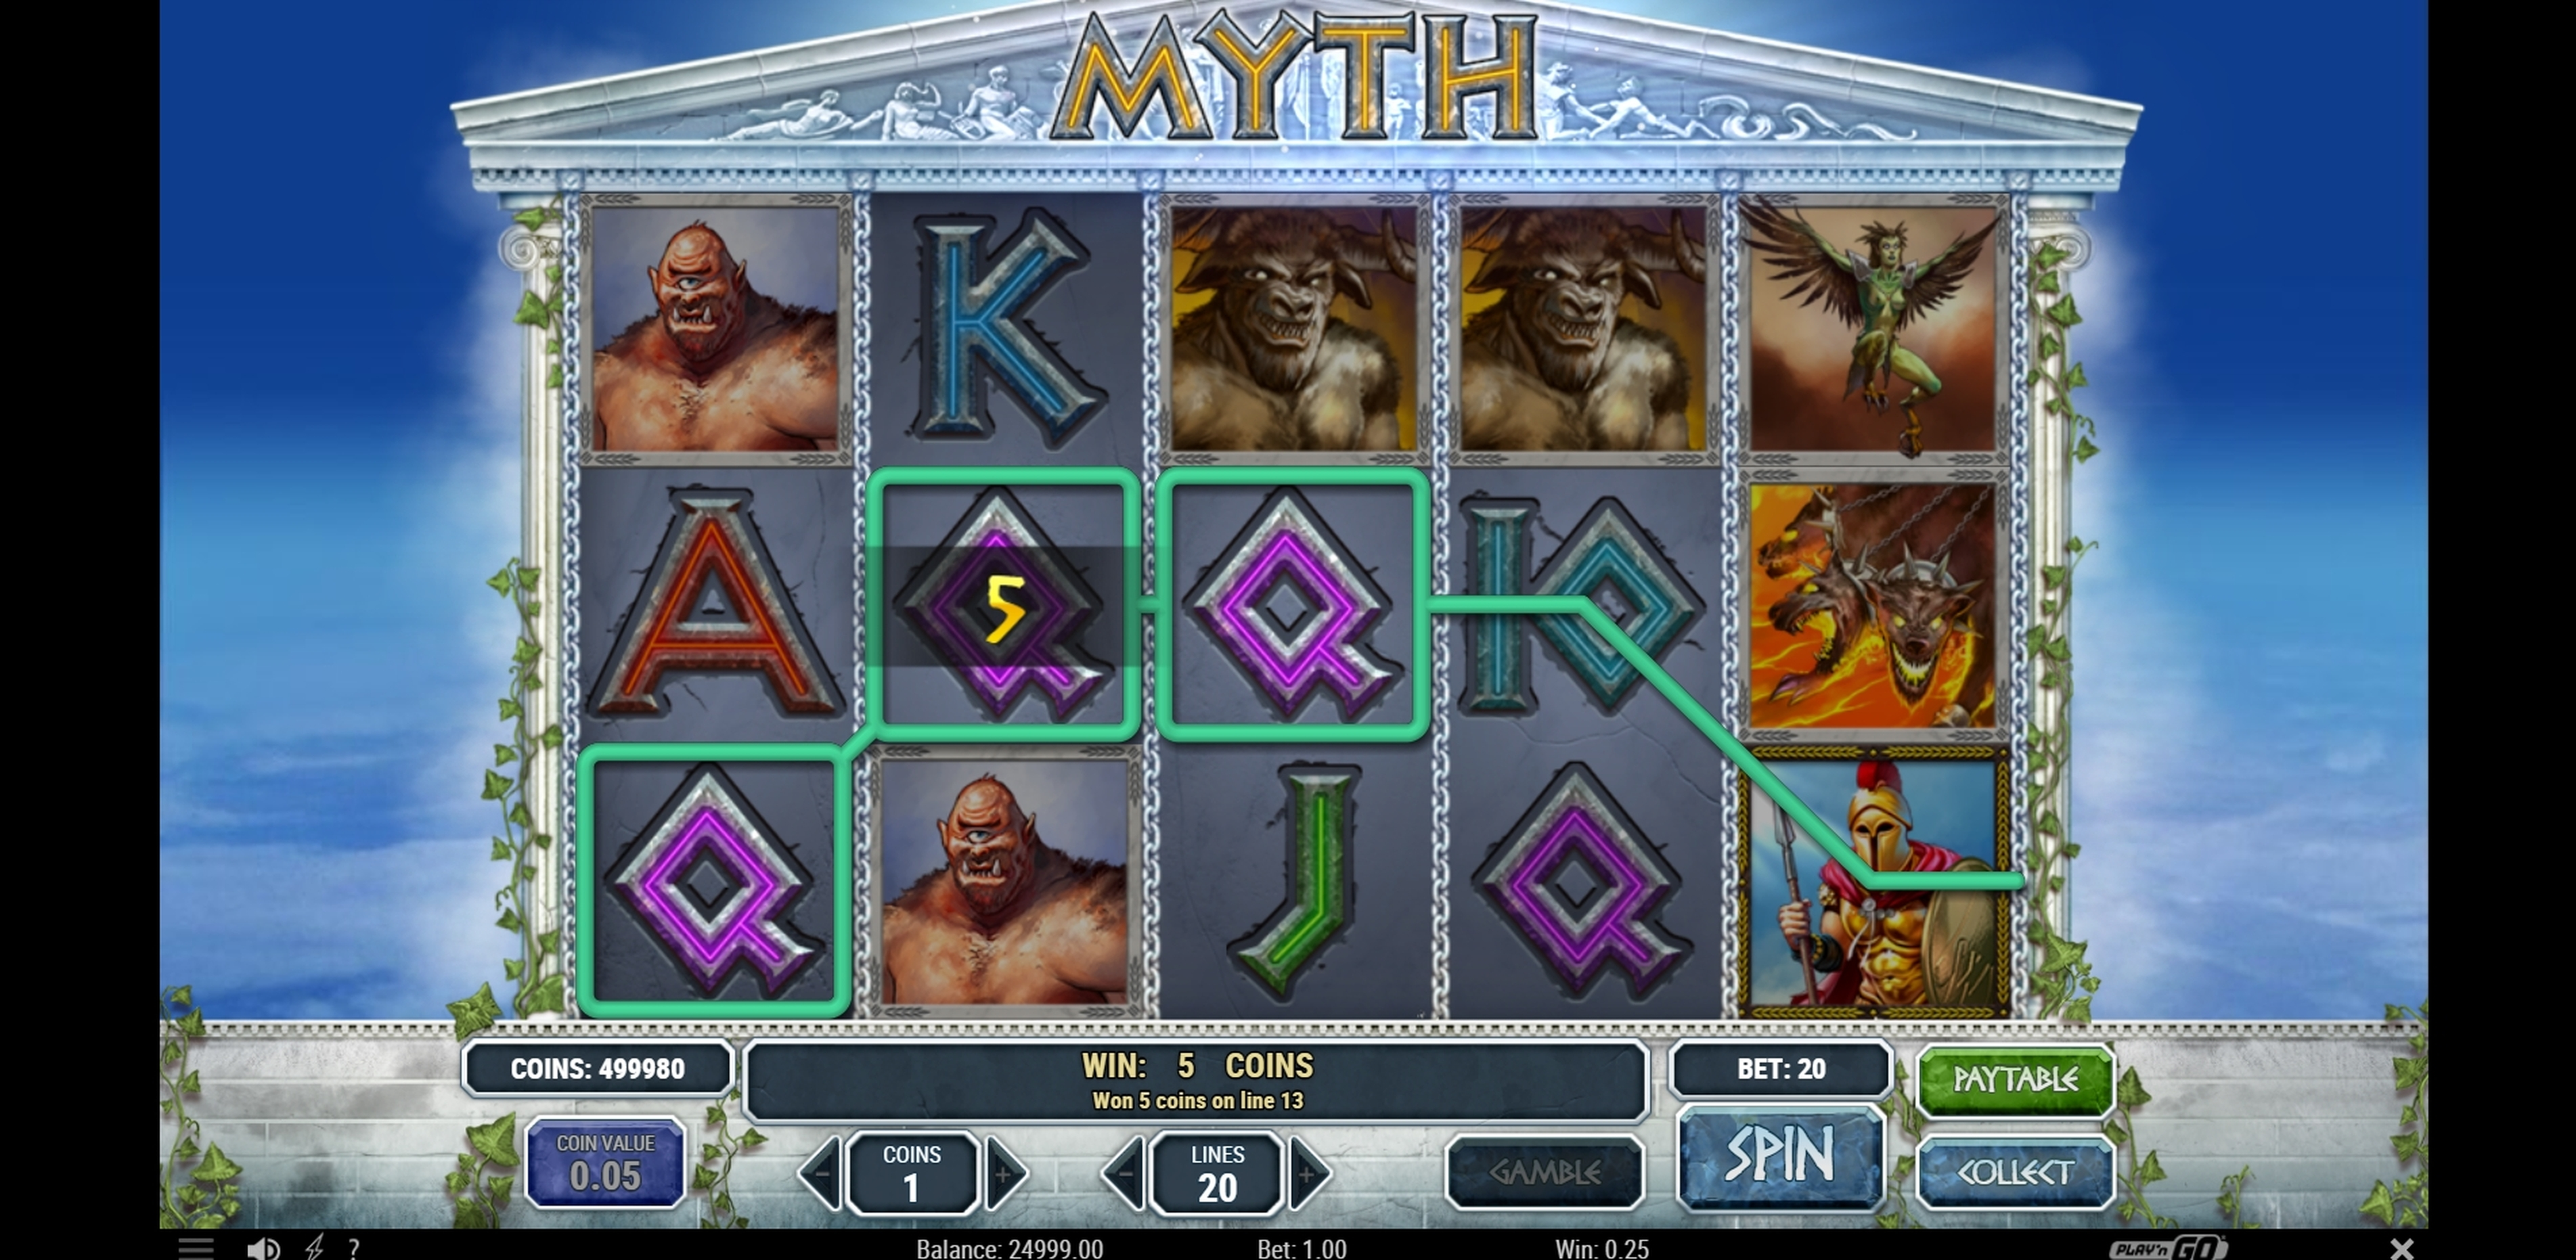 Win Money in Myth Free Slot Game by Play'n Go